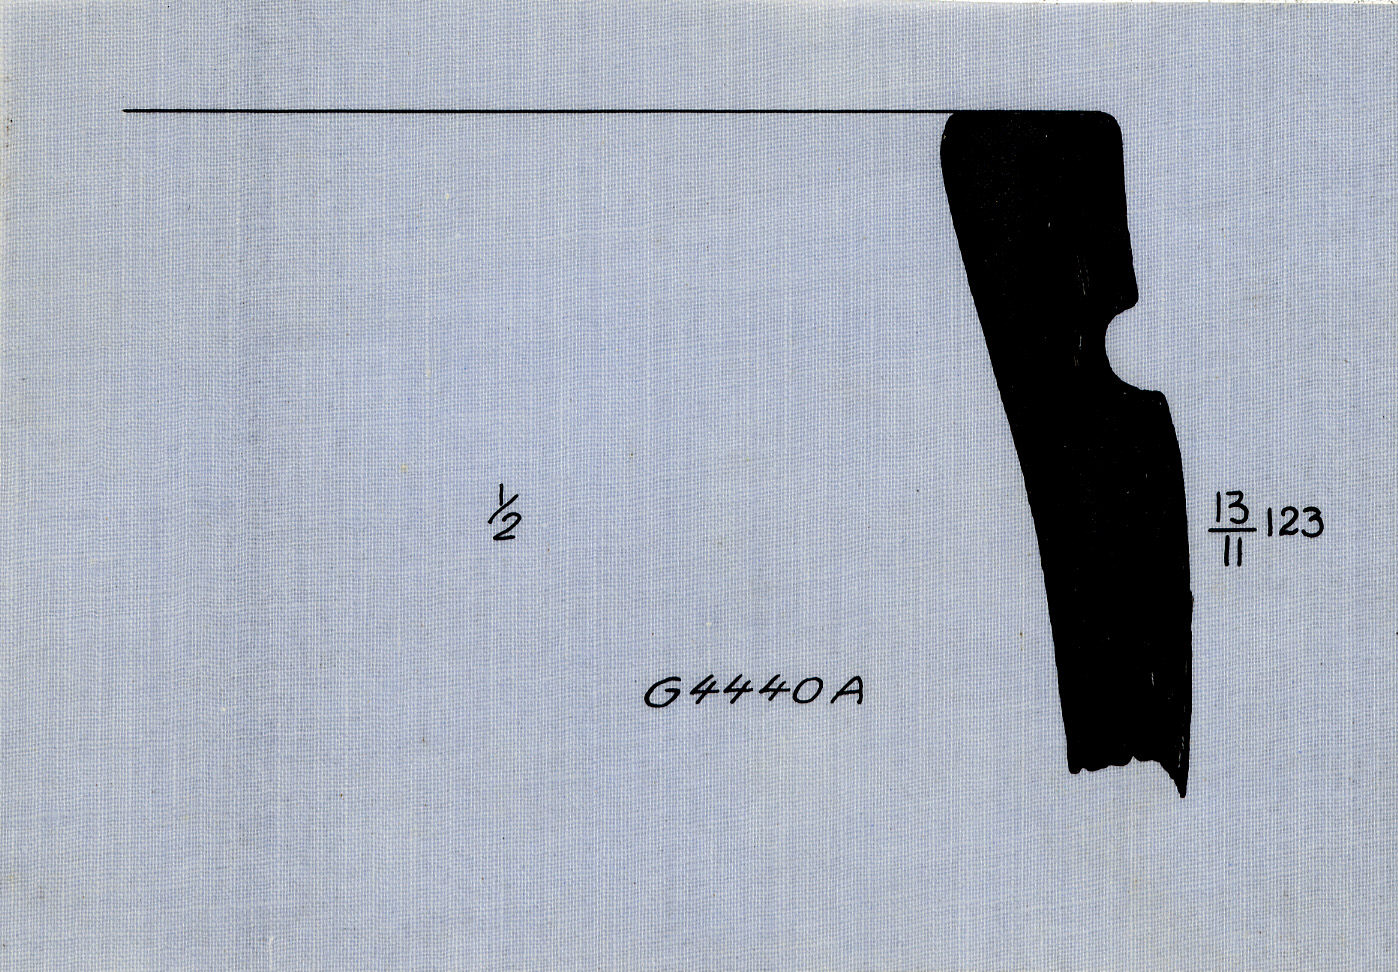 Drawings: G 4440, Shaft A: pottery, basin